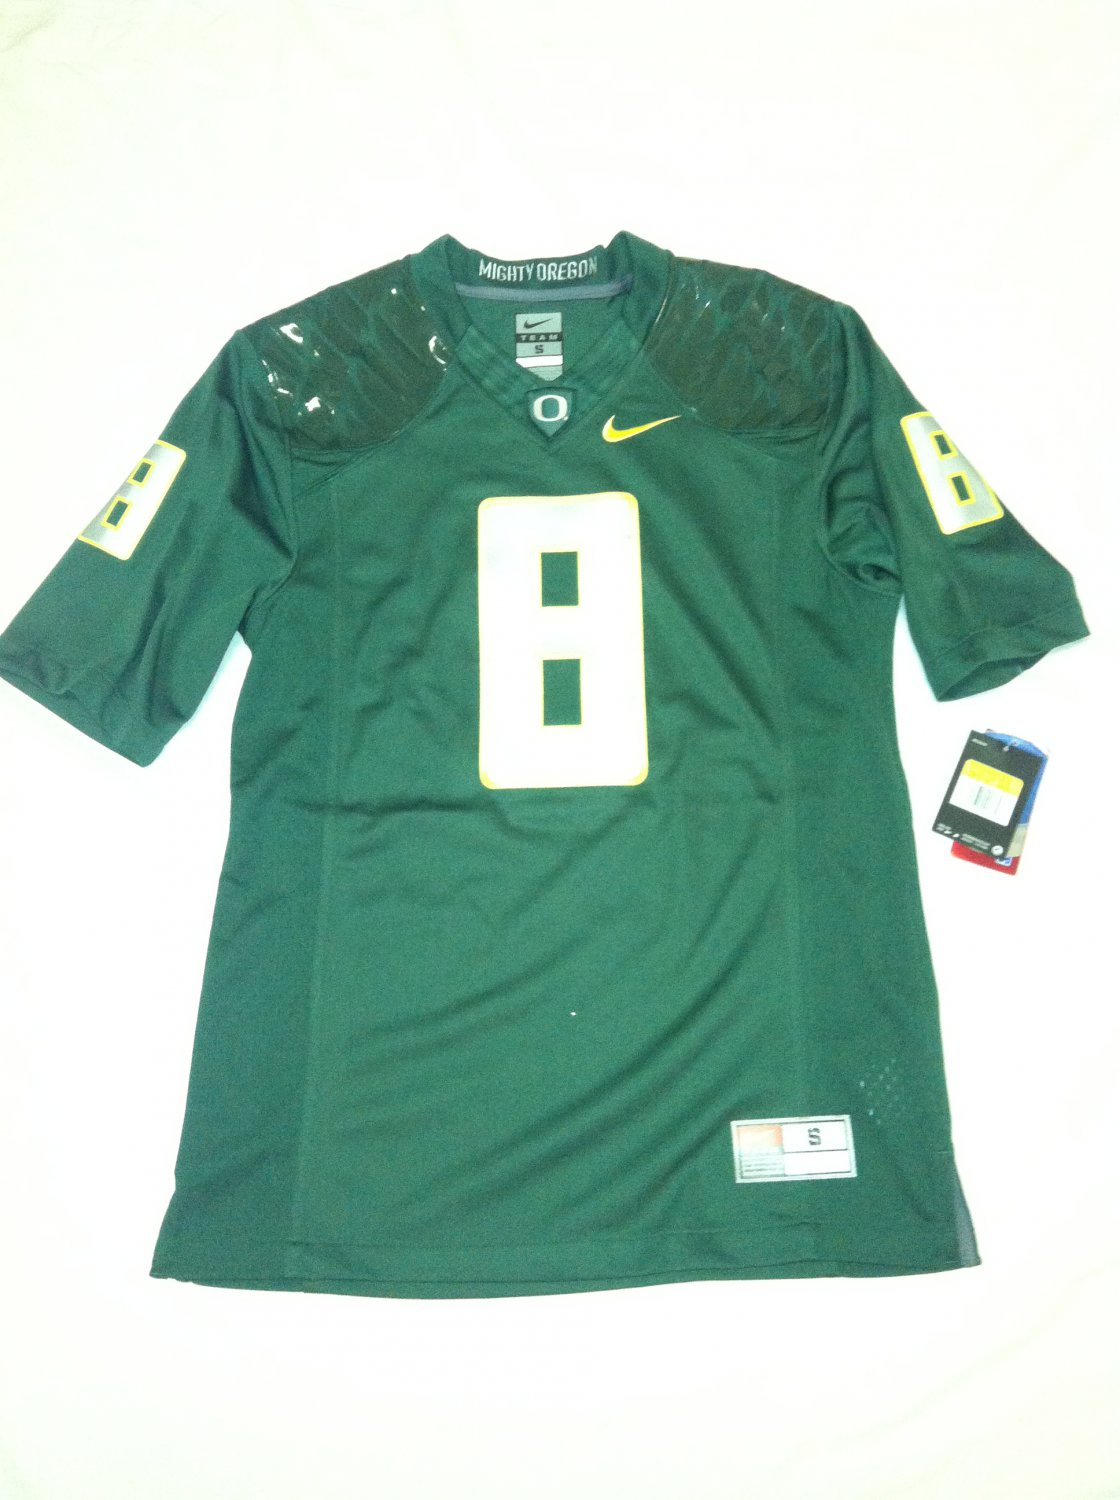 Oregon Ducks #8 (Marcus Mariota) Green Small Nike Limited Jersey